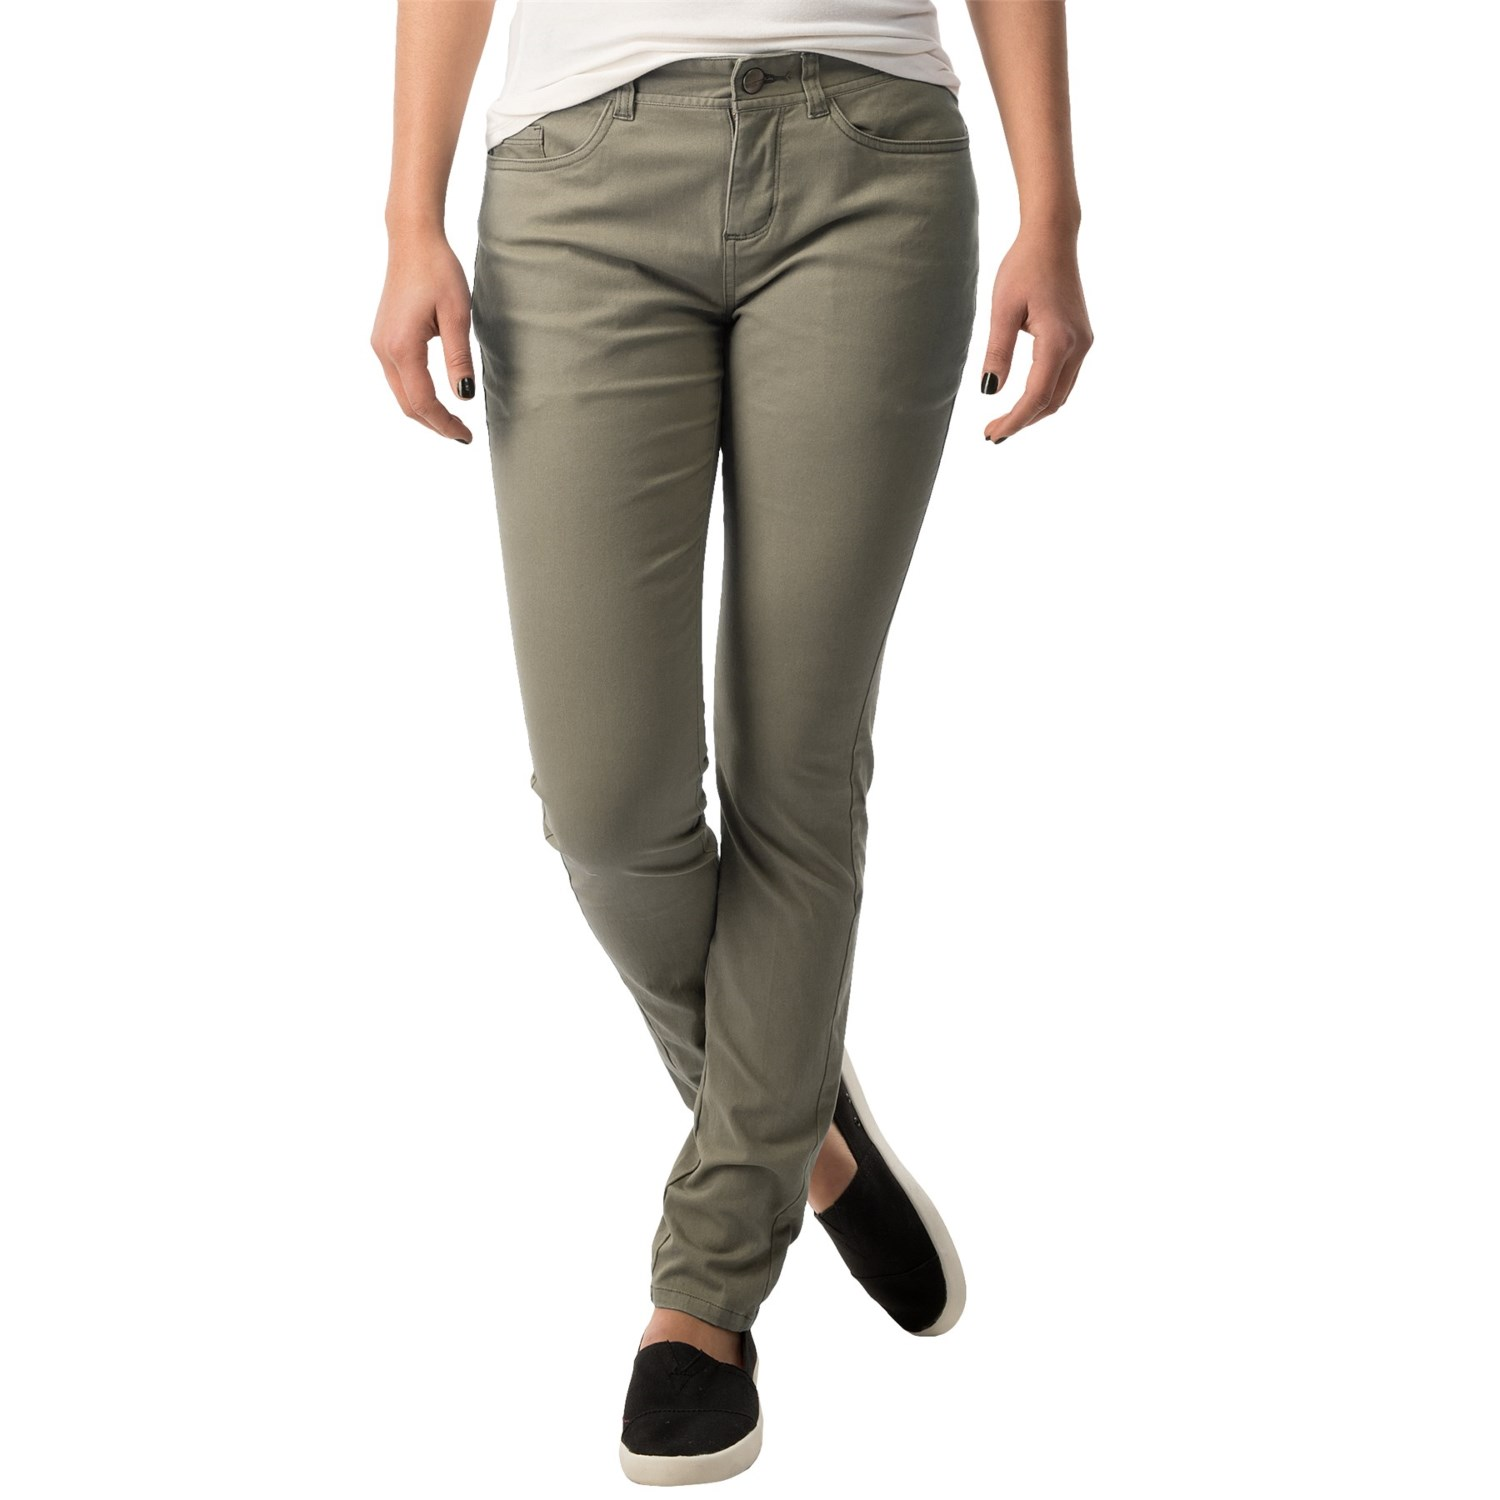 Popular Adaptable Cargo Pant Thats Perfect For All Kinds Of Outdoor AdventuresAn Active, Hardworking Pant With A Twill Texture Made From 975% Cotton, For Softness And Comfort, And 25% Elastane Provides A Surprising Amount Of Stretch